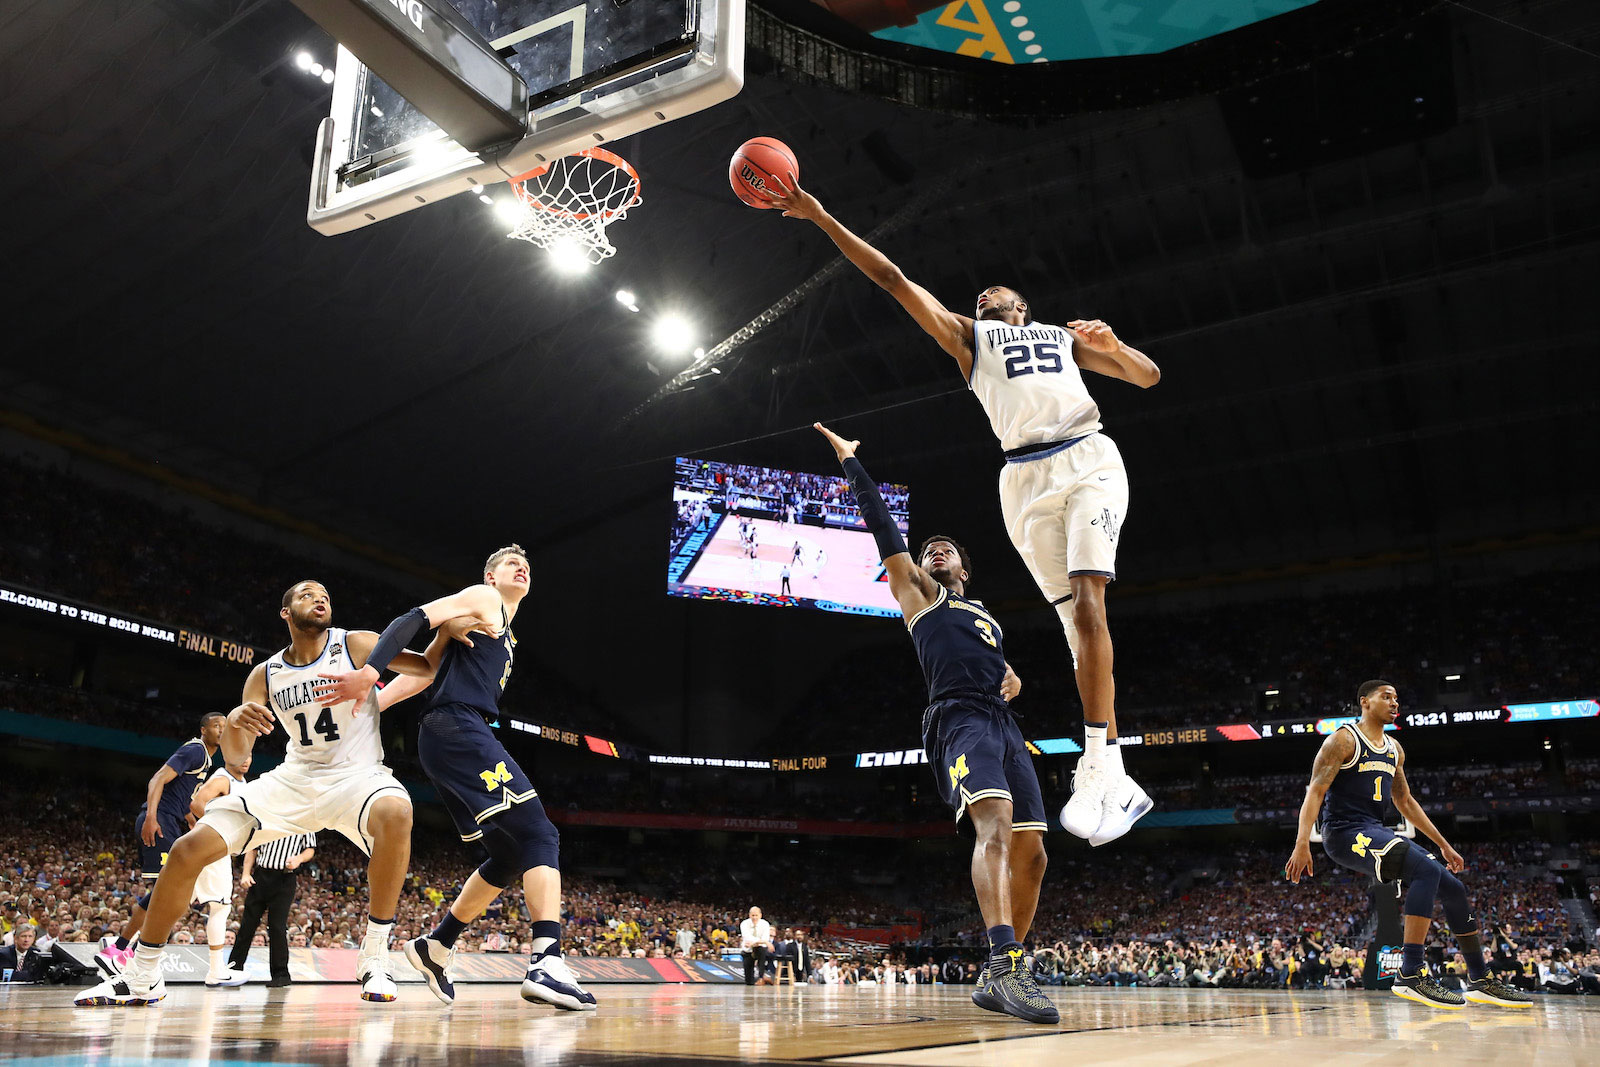 Mikal Bridges #25 of the Villanova Wildcats drives to the basket against Zavier Simpson #3 of the Michigan Wolverines in the second half during the 2018 NCAA Men's Final Four National Championship game at the Alamodome on April 2, 2018 in San Antonio, Texas.